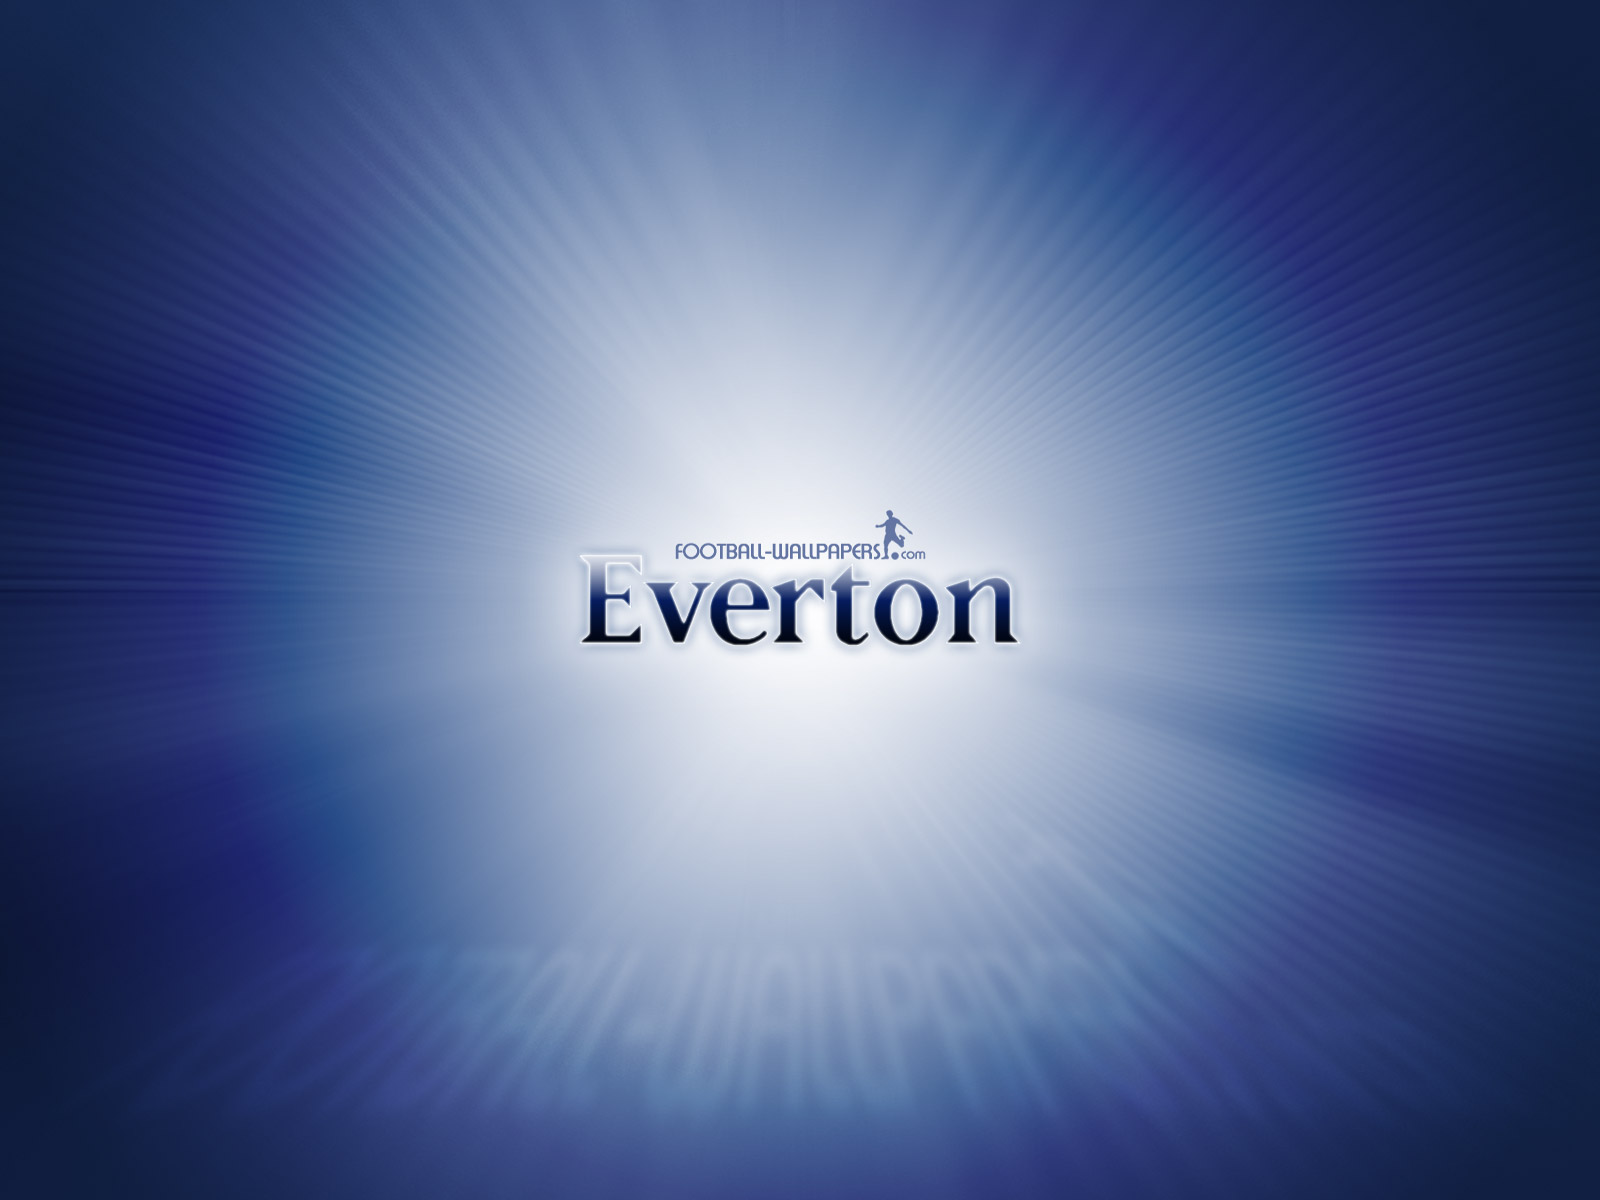 Wallpaper Free Picture: Everton FC Wallpaper 2011